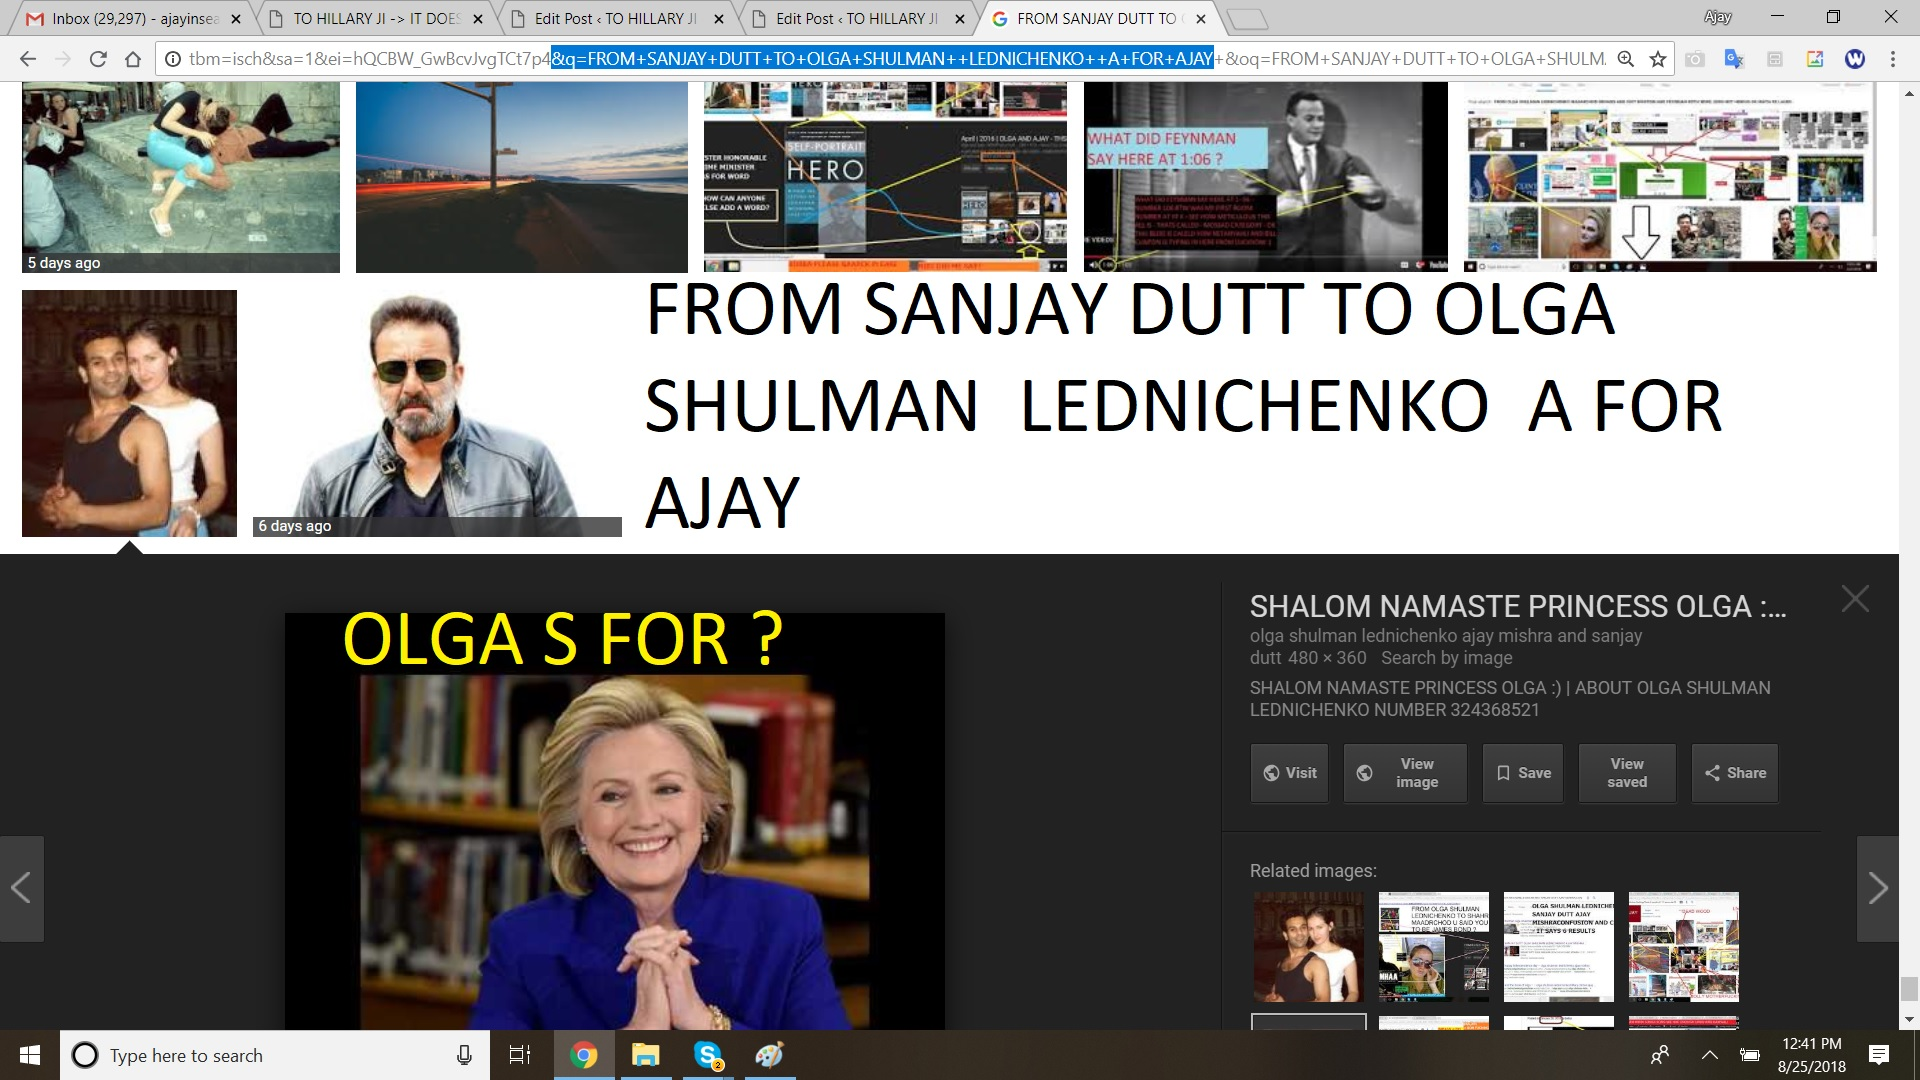 FROM SANJAY DUTT TO OLGA - A FOR